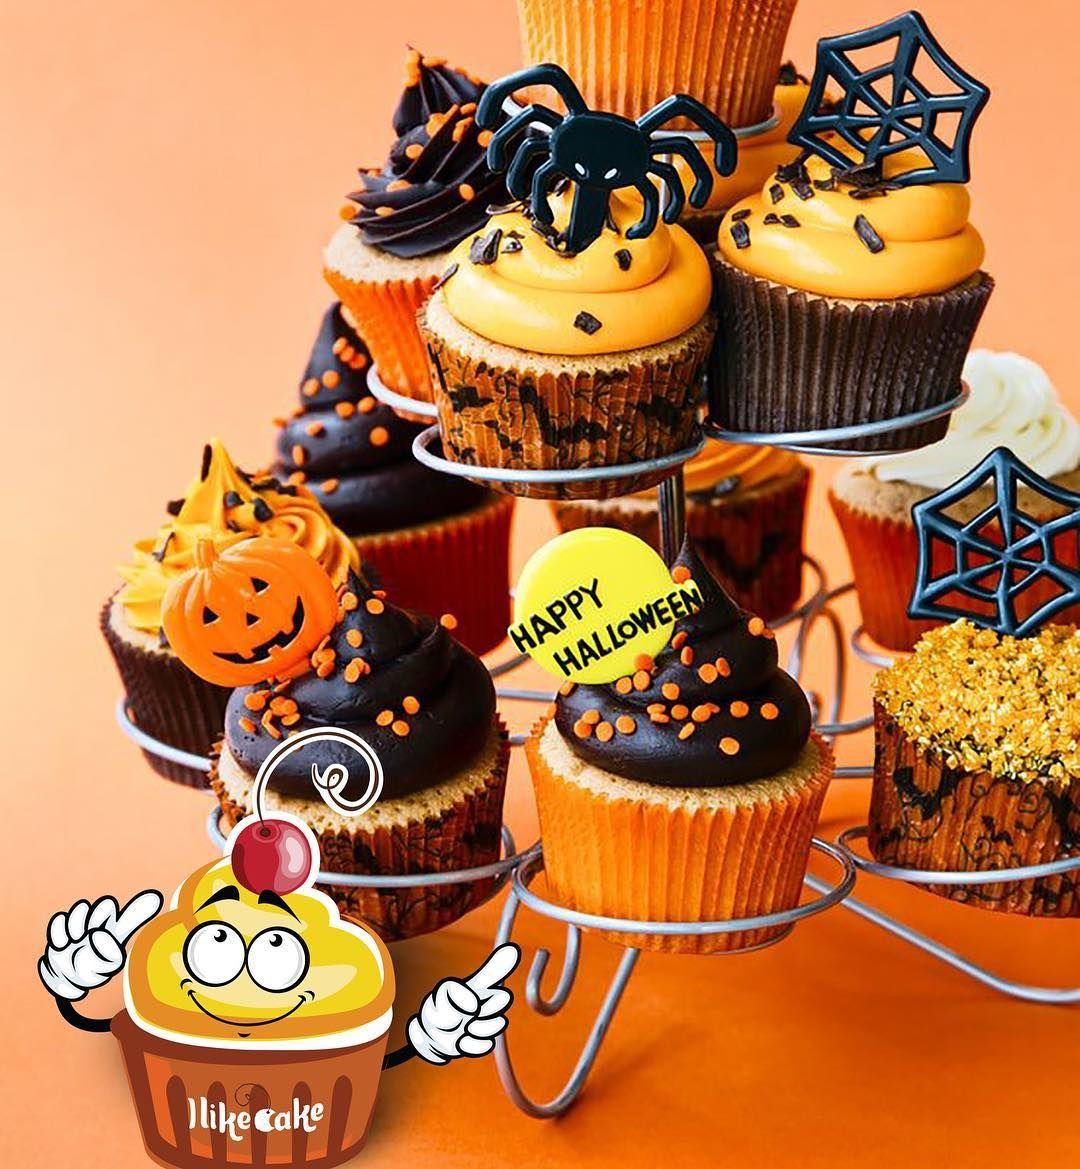 Pin by mart on Cupcake Pinterest Moscow and Cake - Inside Halloween Decorations